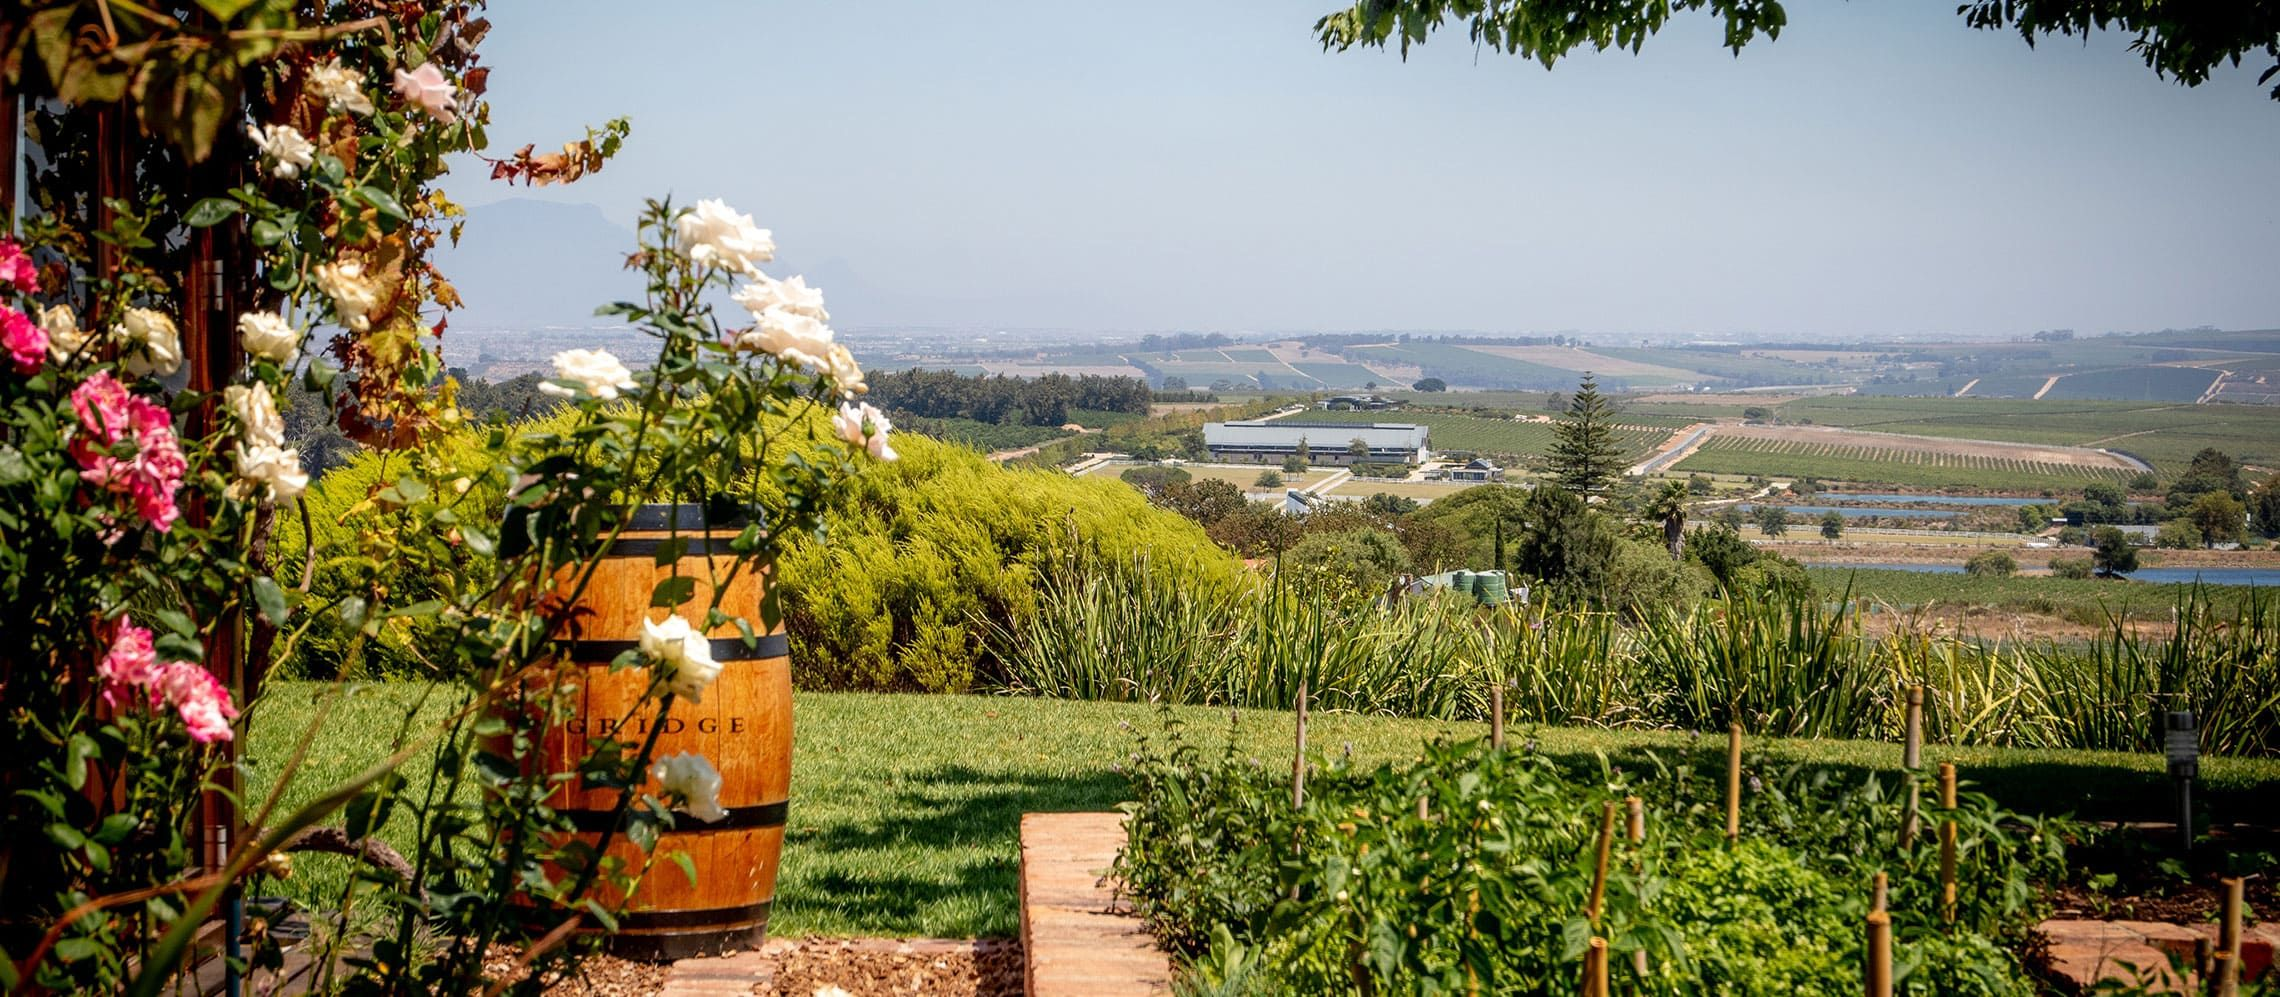 Photo for: Winery Day Road Trip Around London In COVID-19